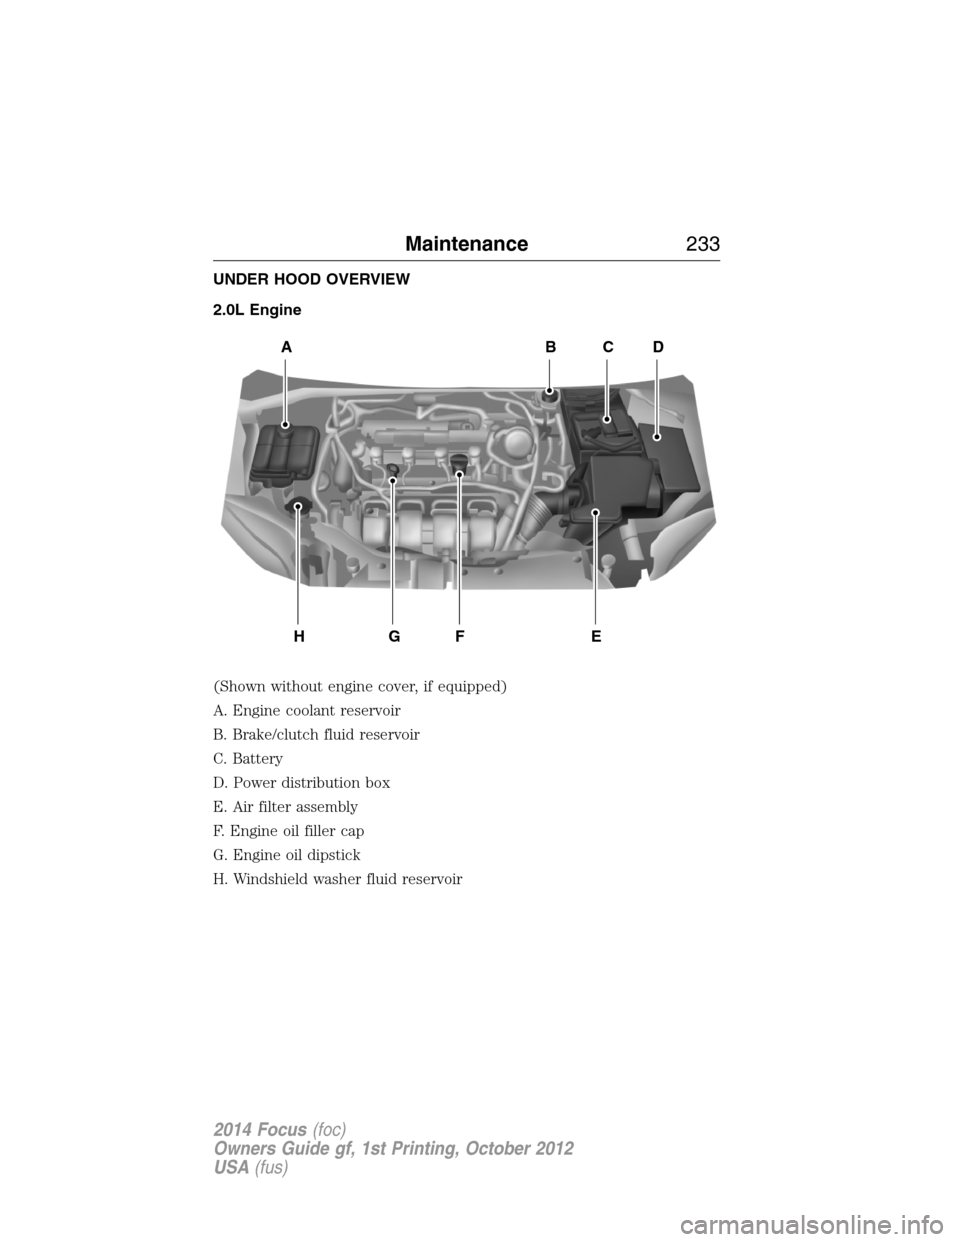 Ford Focus 2 3 Engine Diagram Xg Fuse Box Wiring Diagrams Linear Saab Coolant G Owners Manual 2014 Page 234